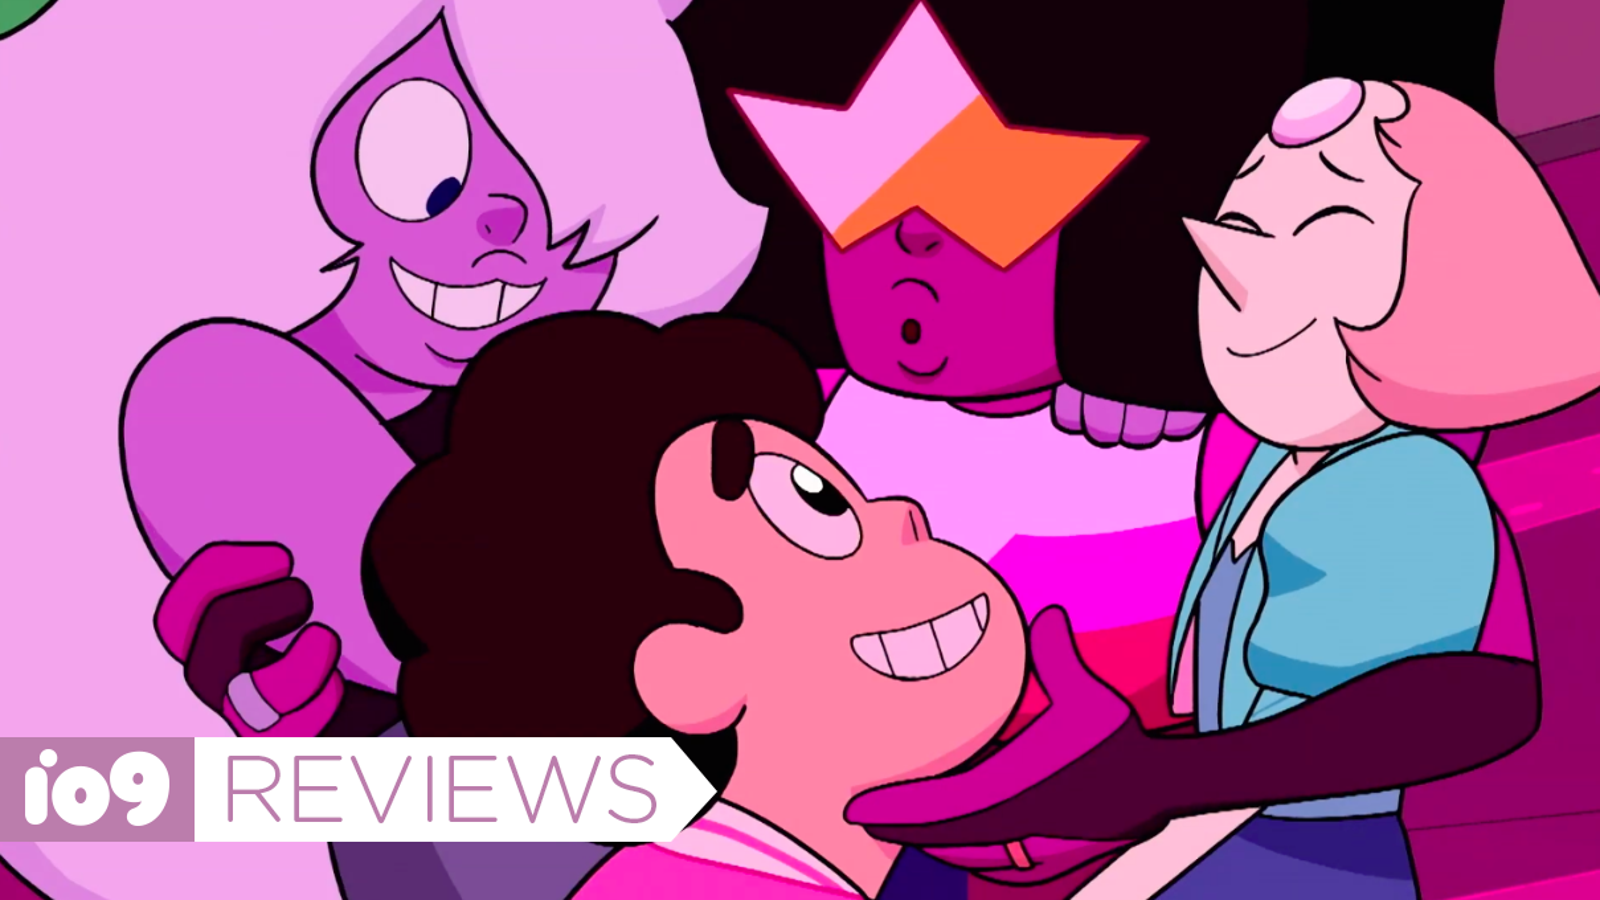 Steven Universe: The Movie Is a Mindblowingly Heartfelt, Musical Masterpiece